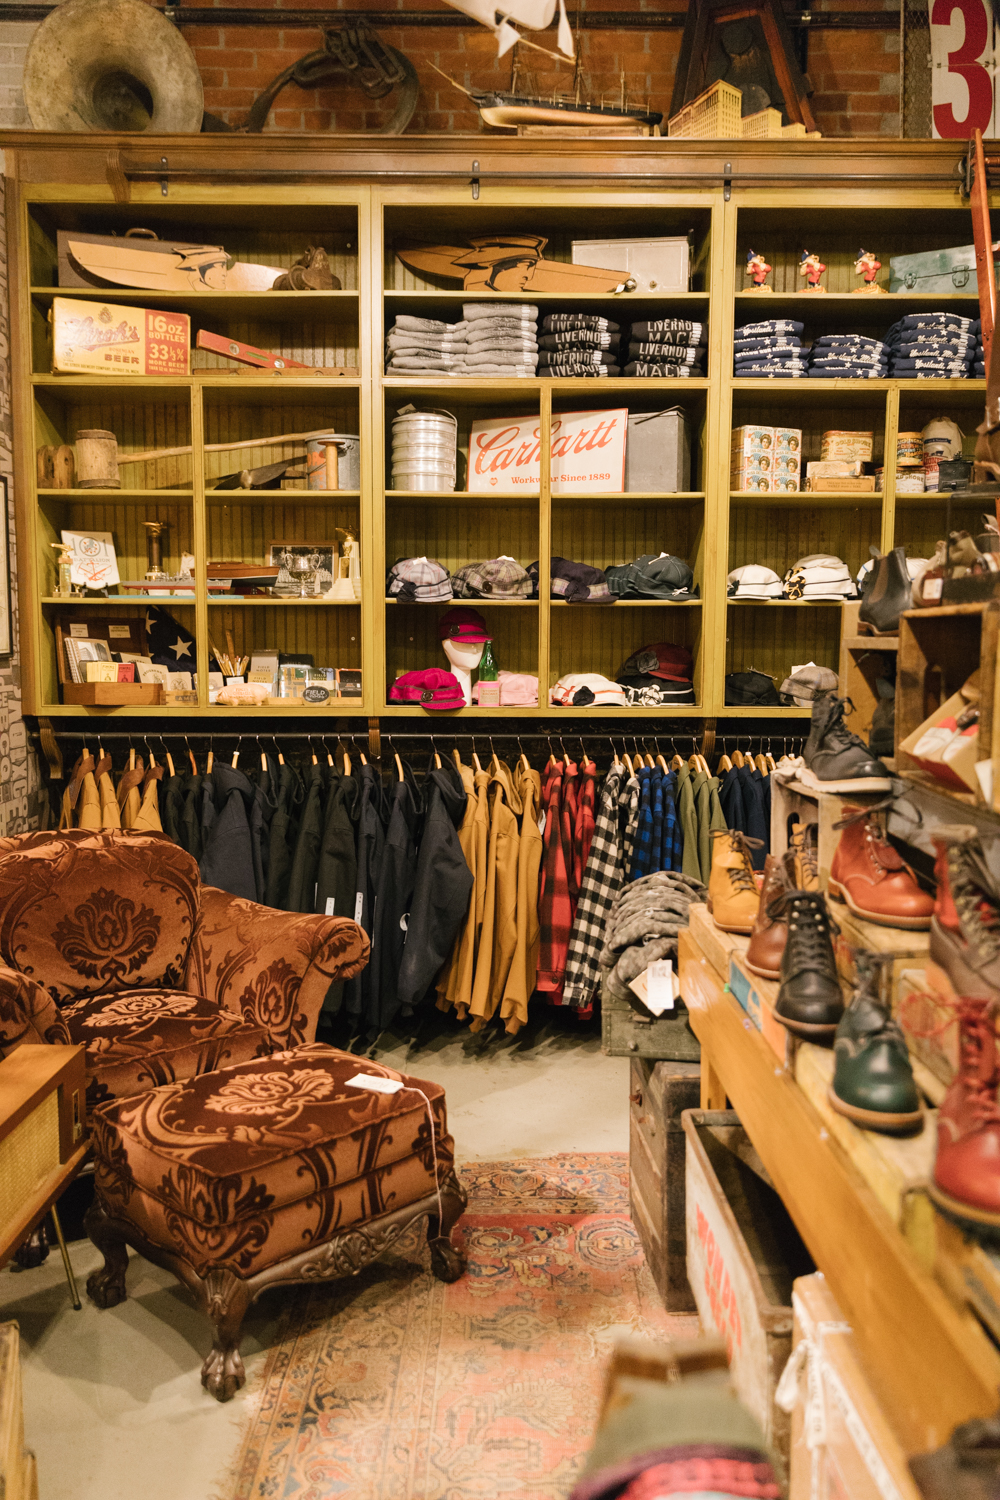 Detroit Mercantile Co. carries local goods from Michigan makers.